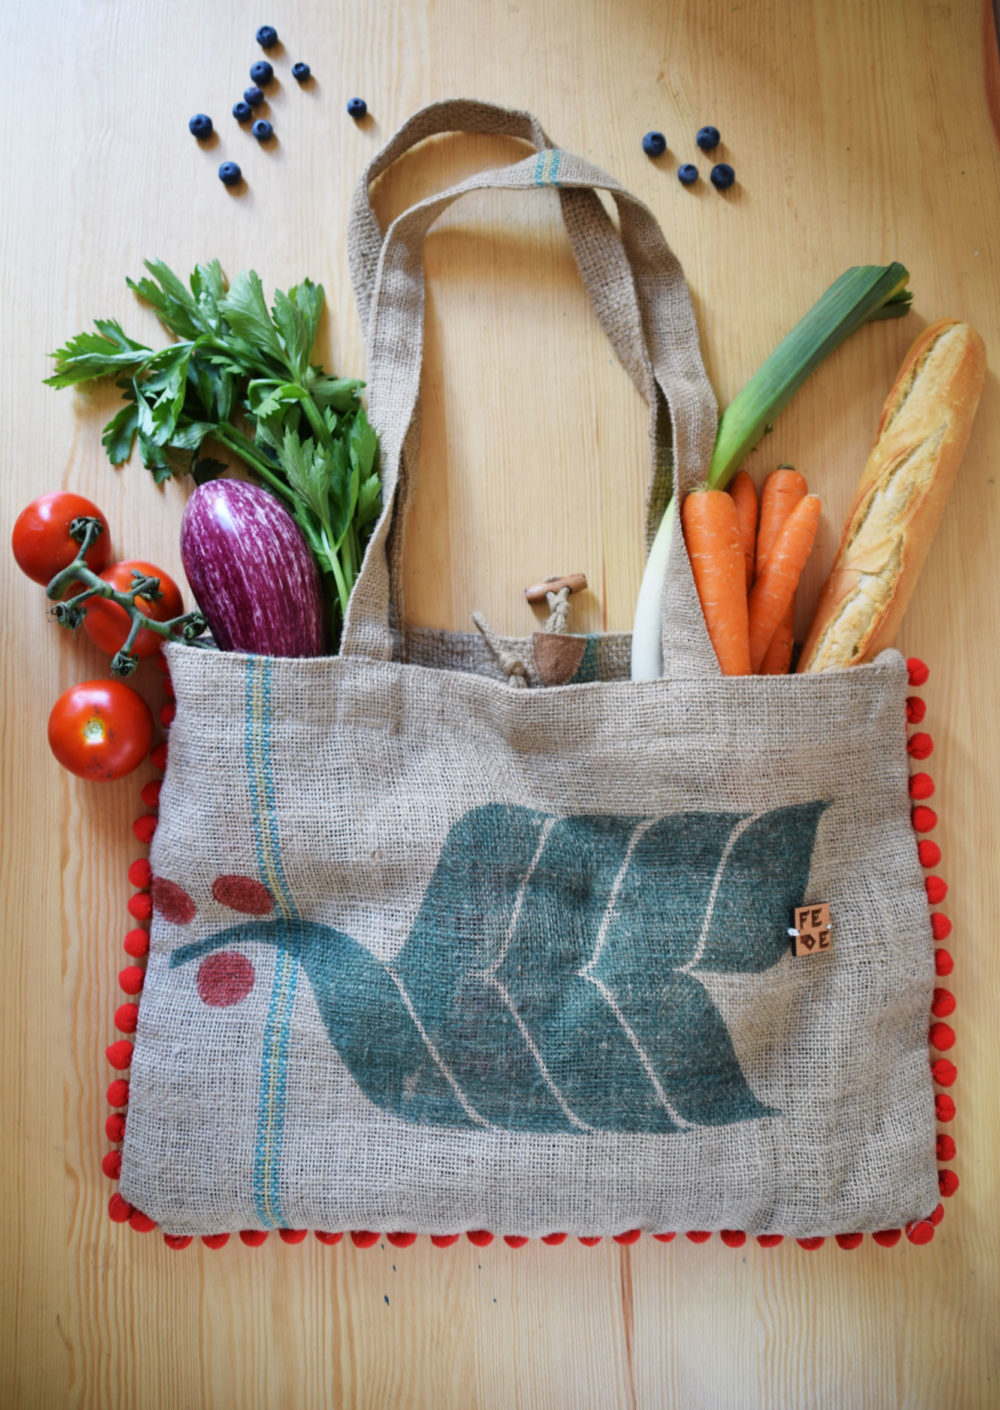 Farmer Market bag - Fede Surfbags